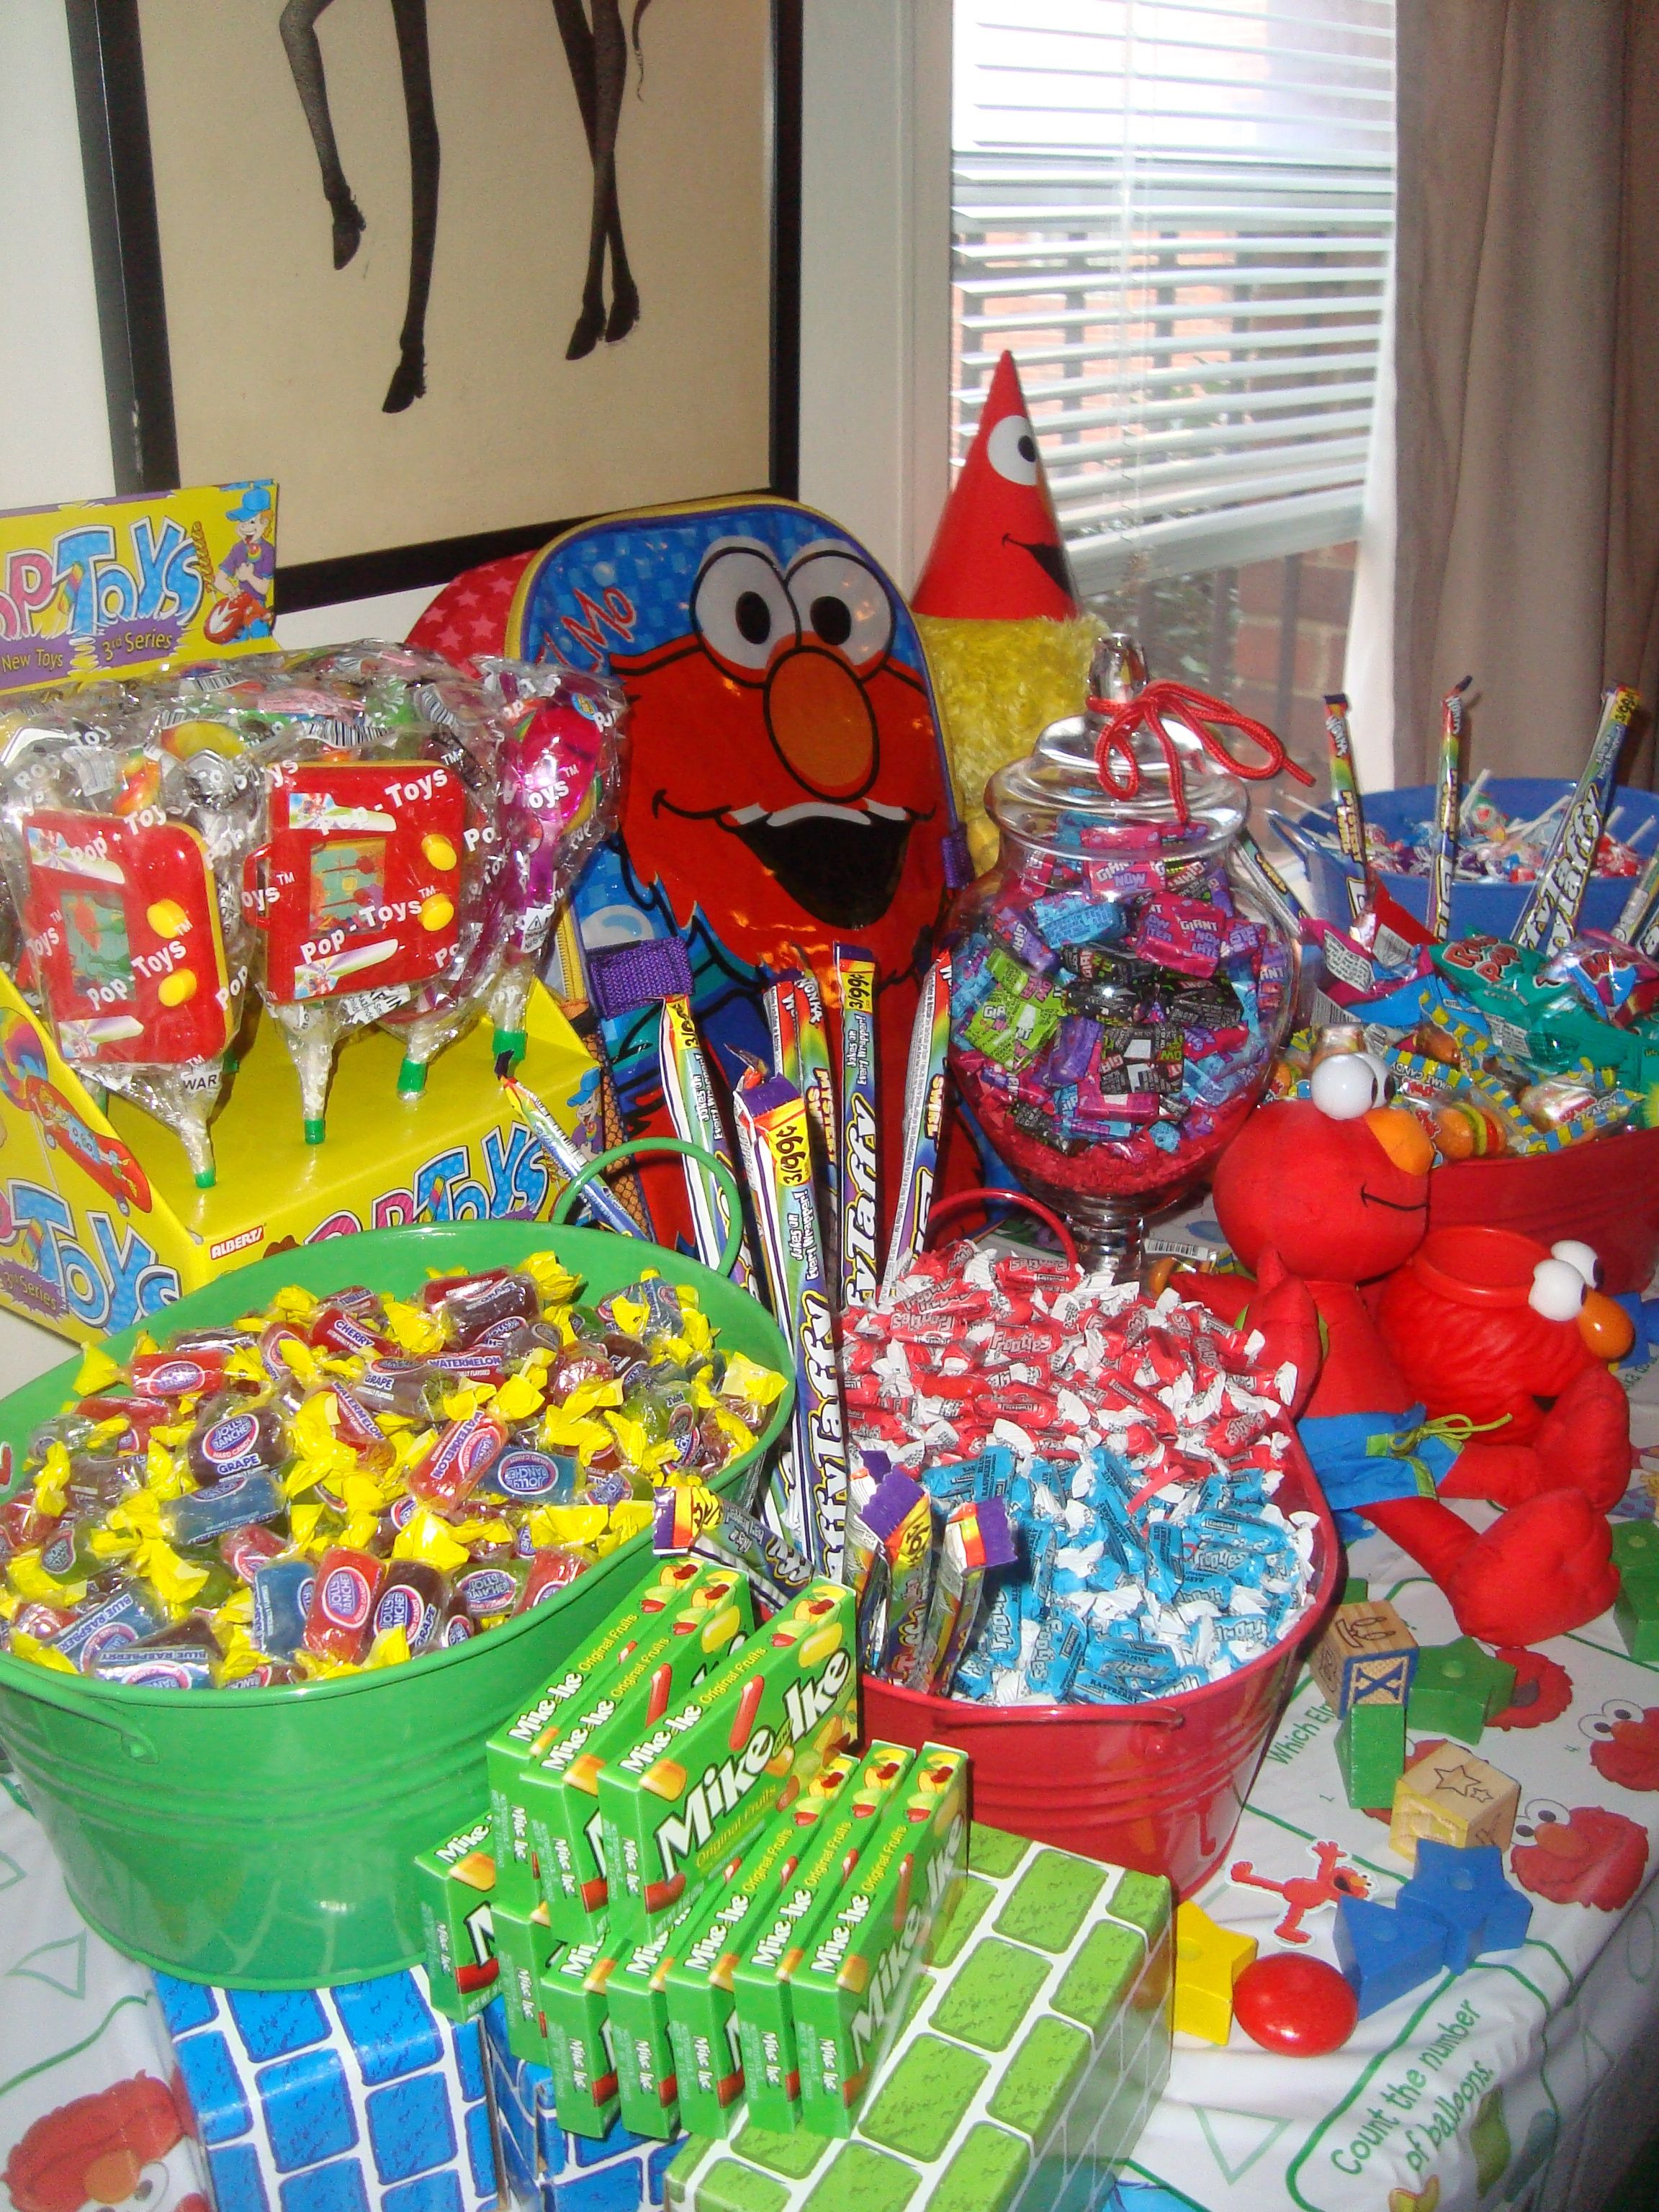 Here is a candy buffet I created for a 1st birthday party The kids